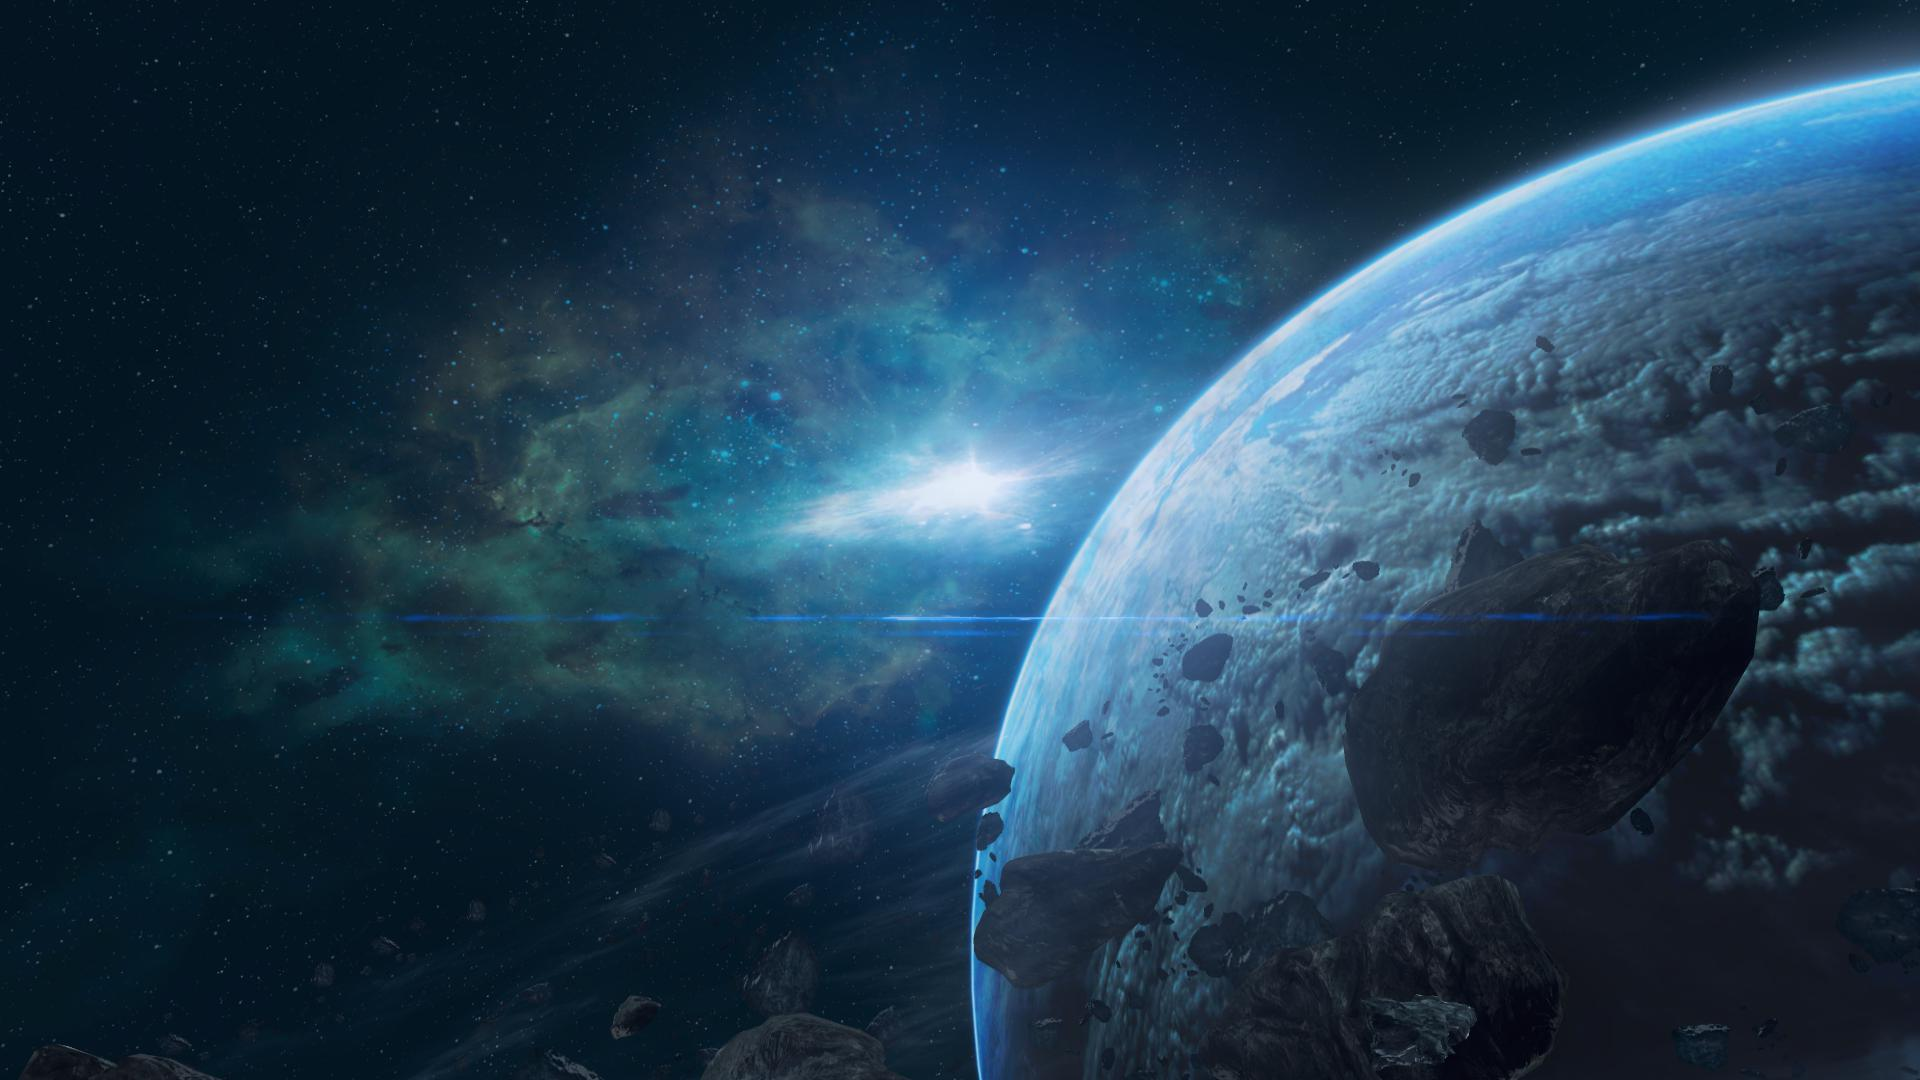 planete jeufrHalo 4wallpaperswallpaper halo 4 10jpg 1920x1080